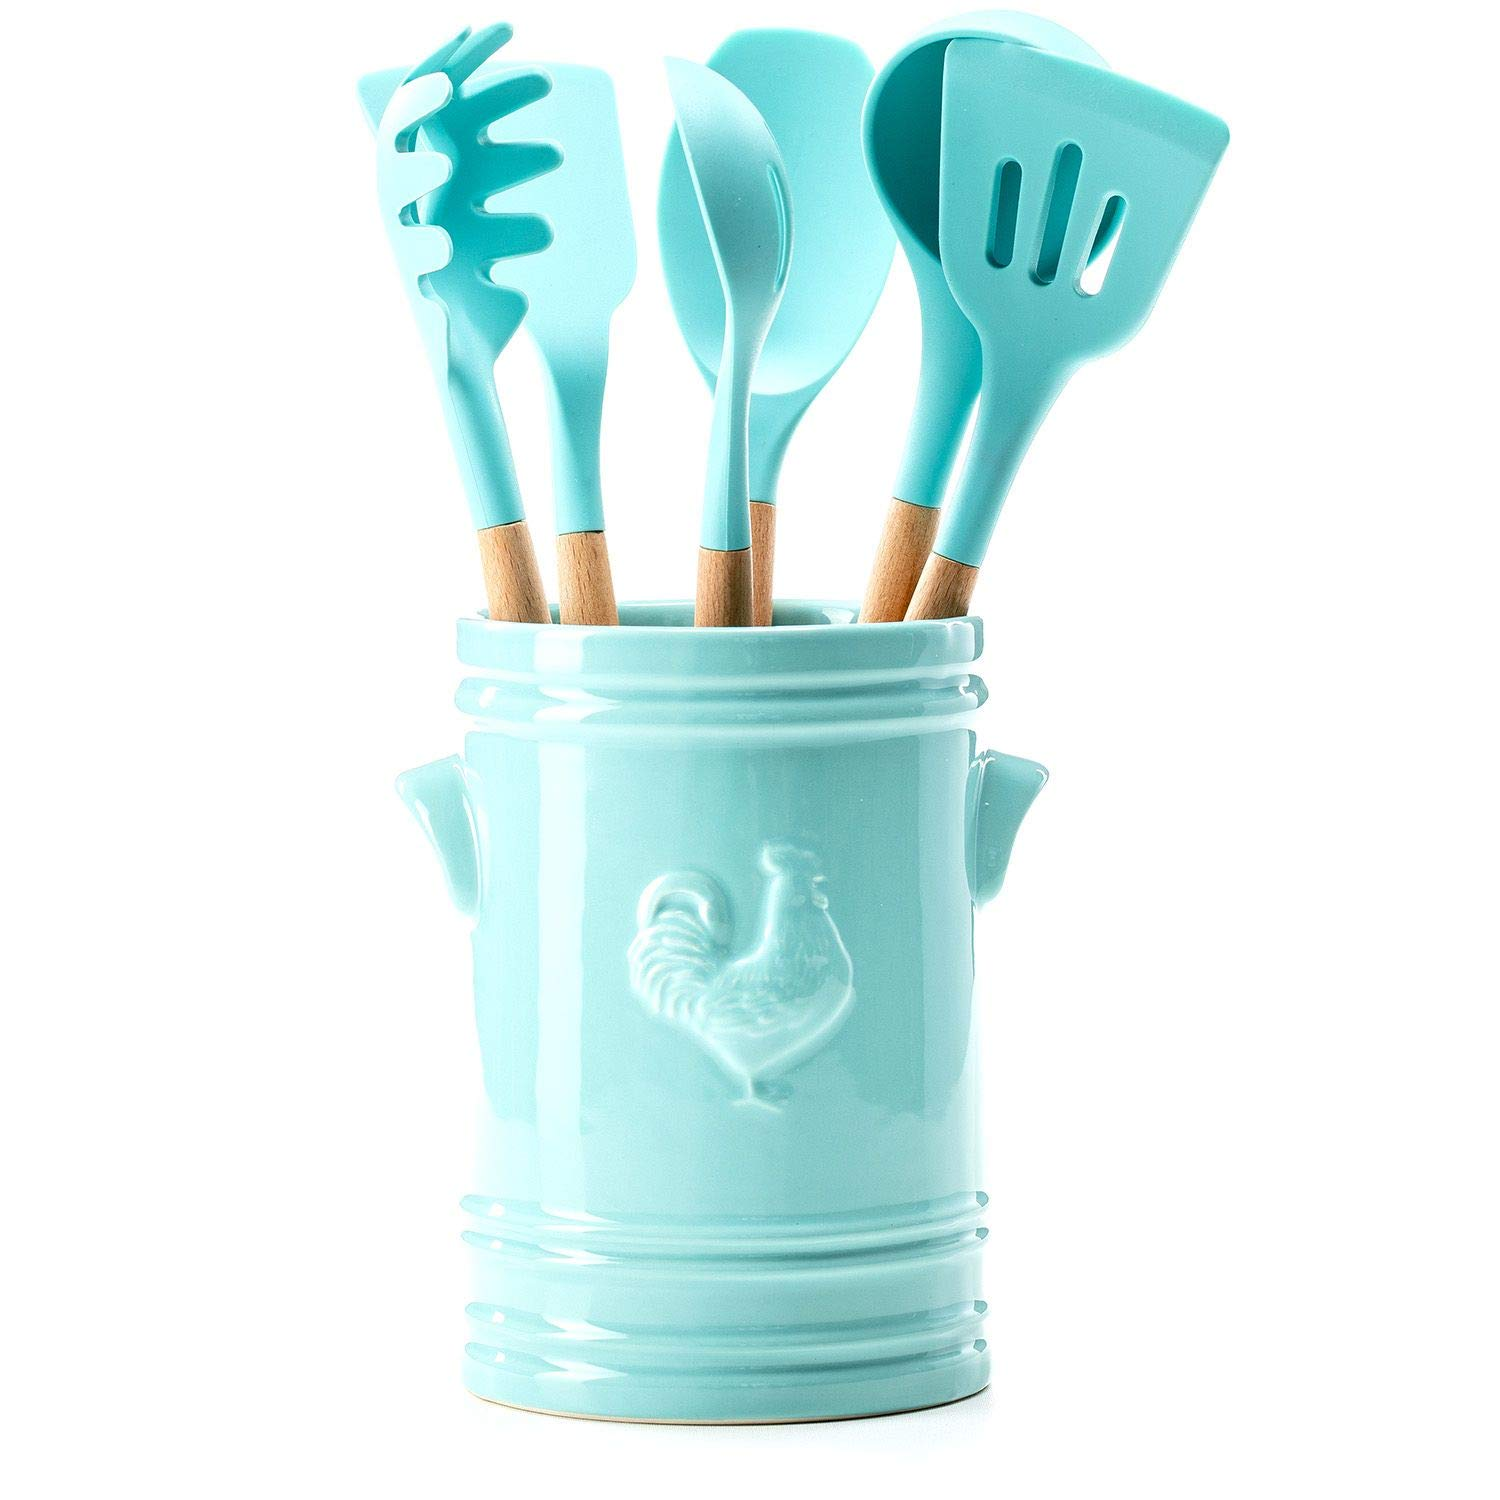 7-Piece Crock and Utensil Set (Teal) by Farmers Market